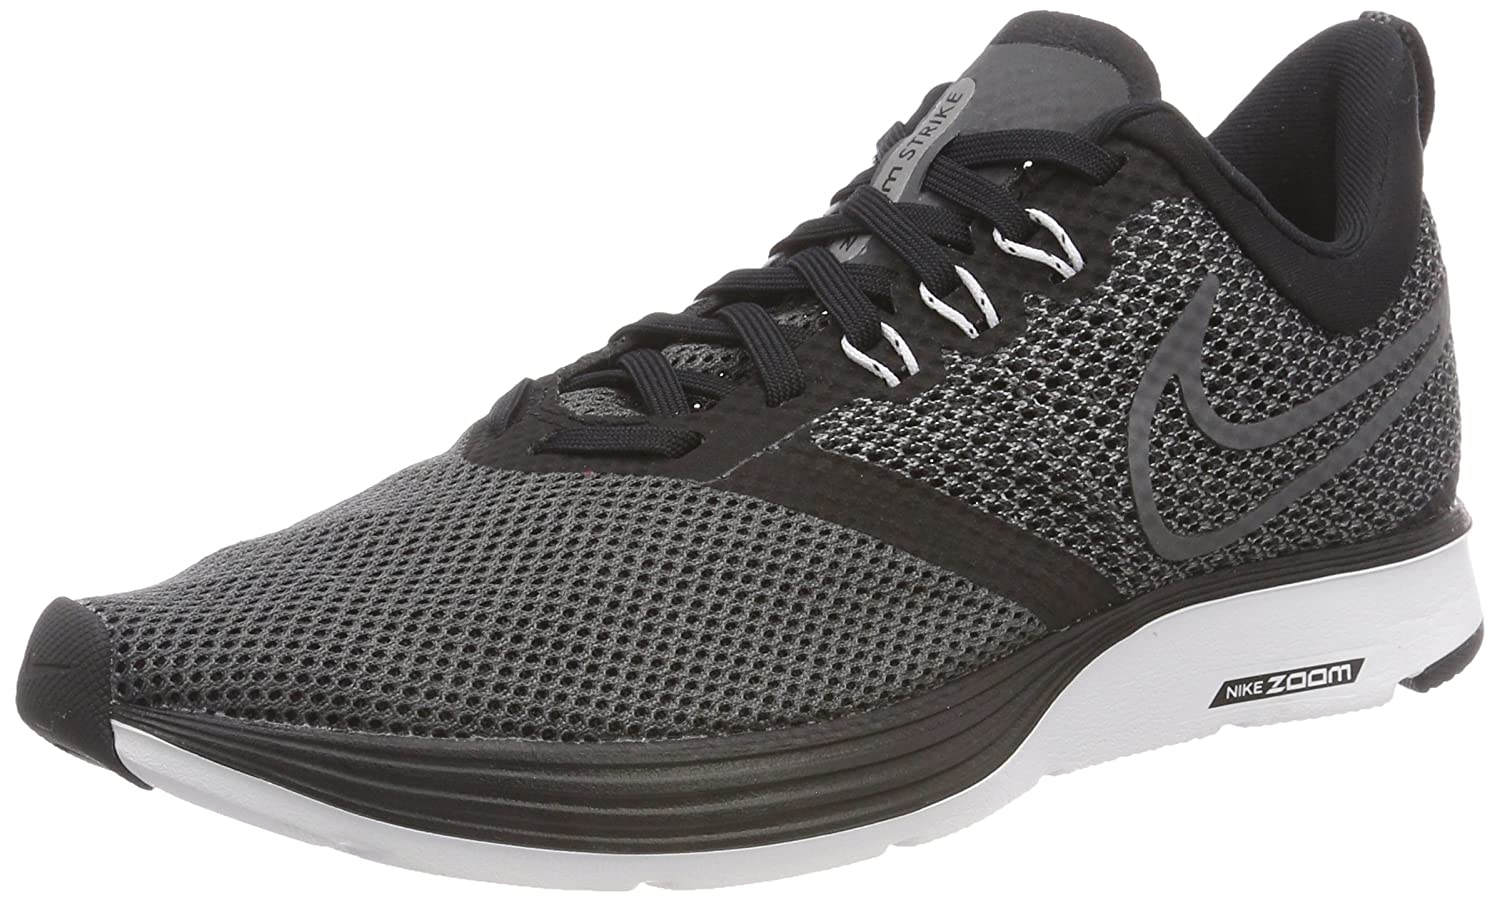 NIKE Men Zoom Strike Athletic/Running Shoes B06XV1WQ49 9 M US|Black/White-dark Grey